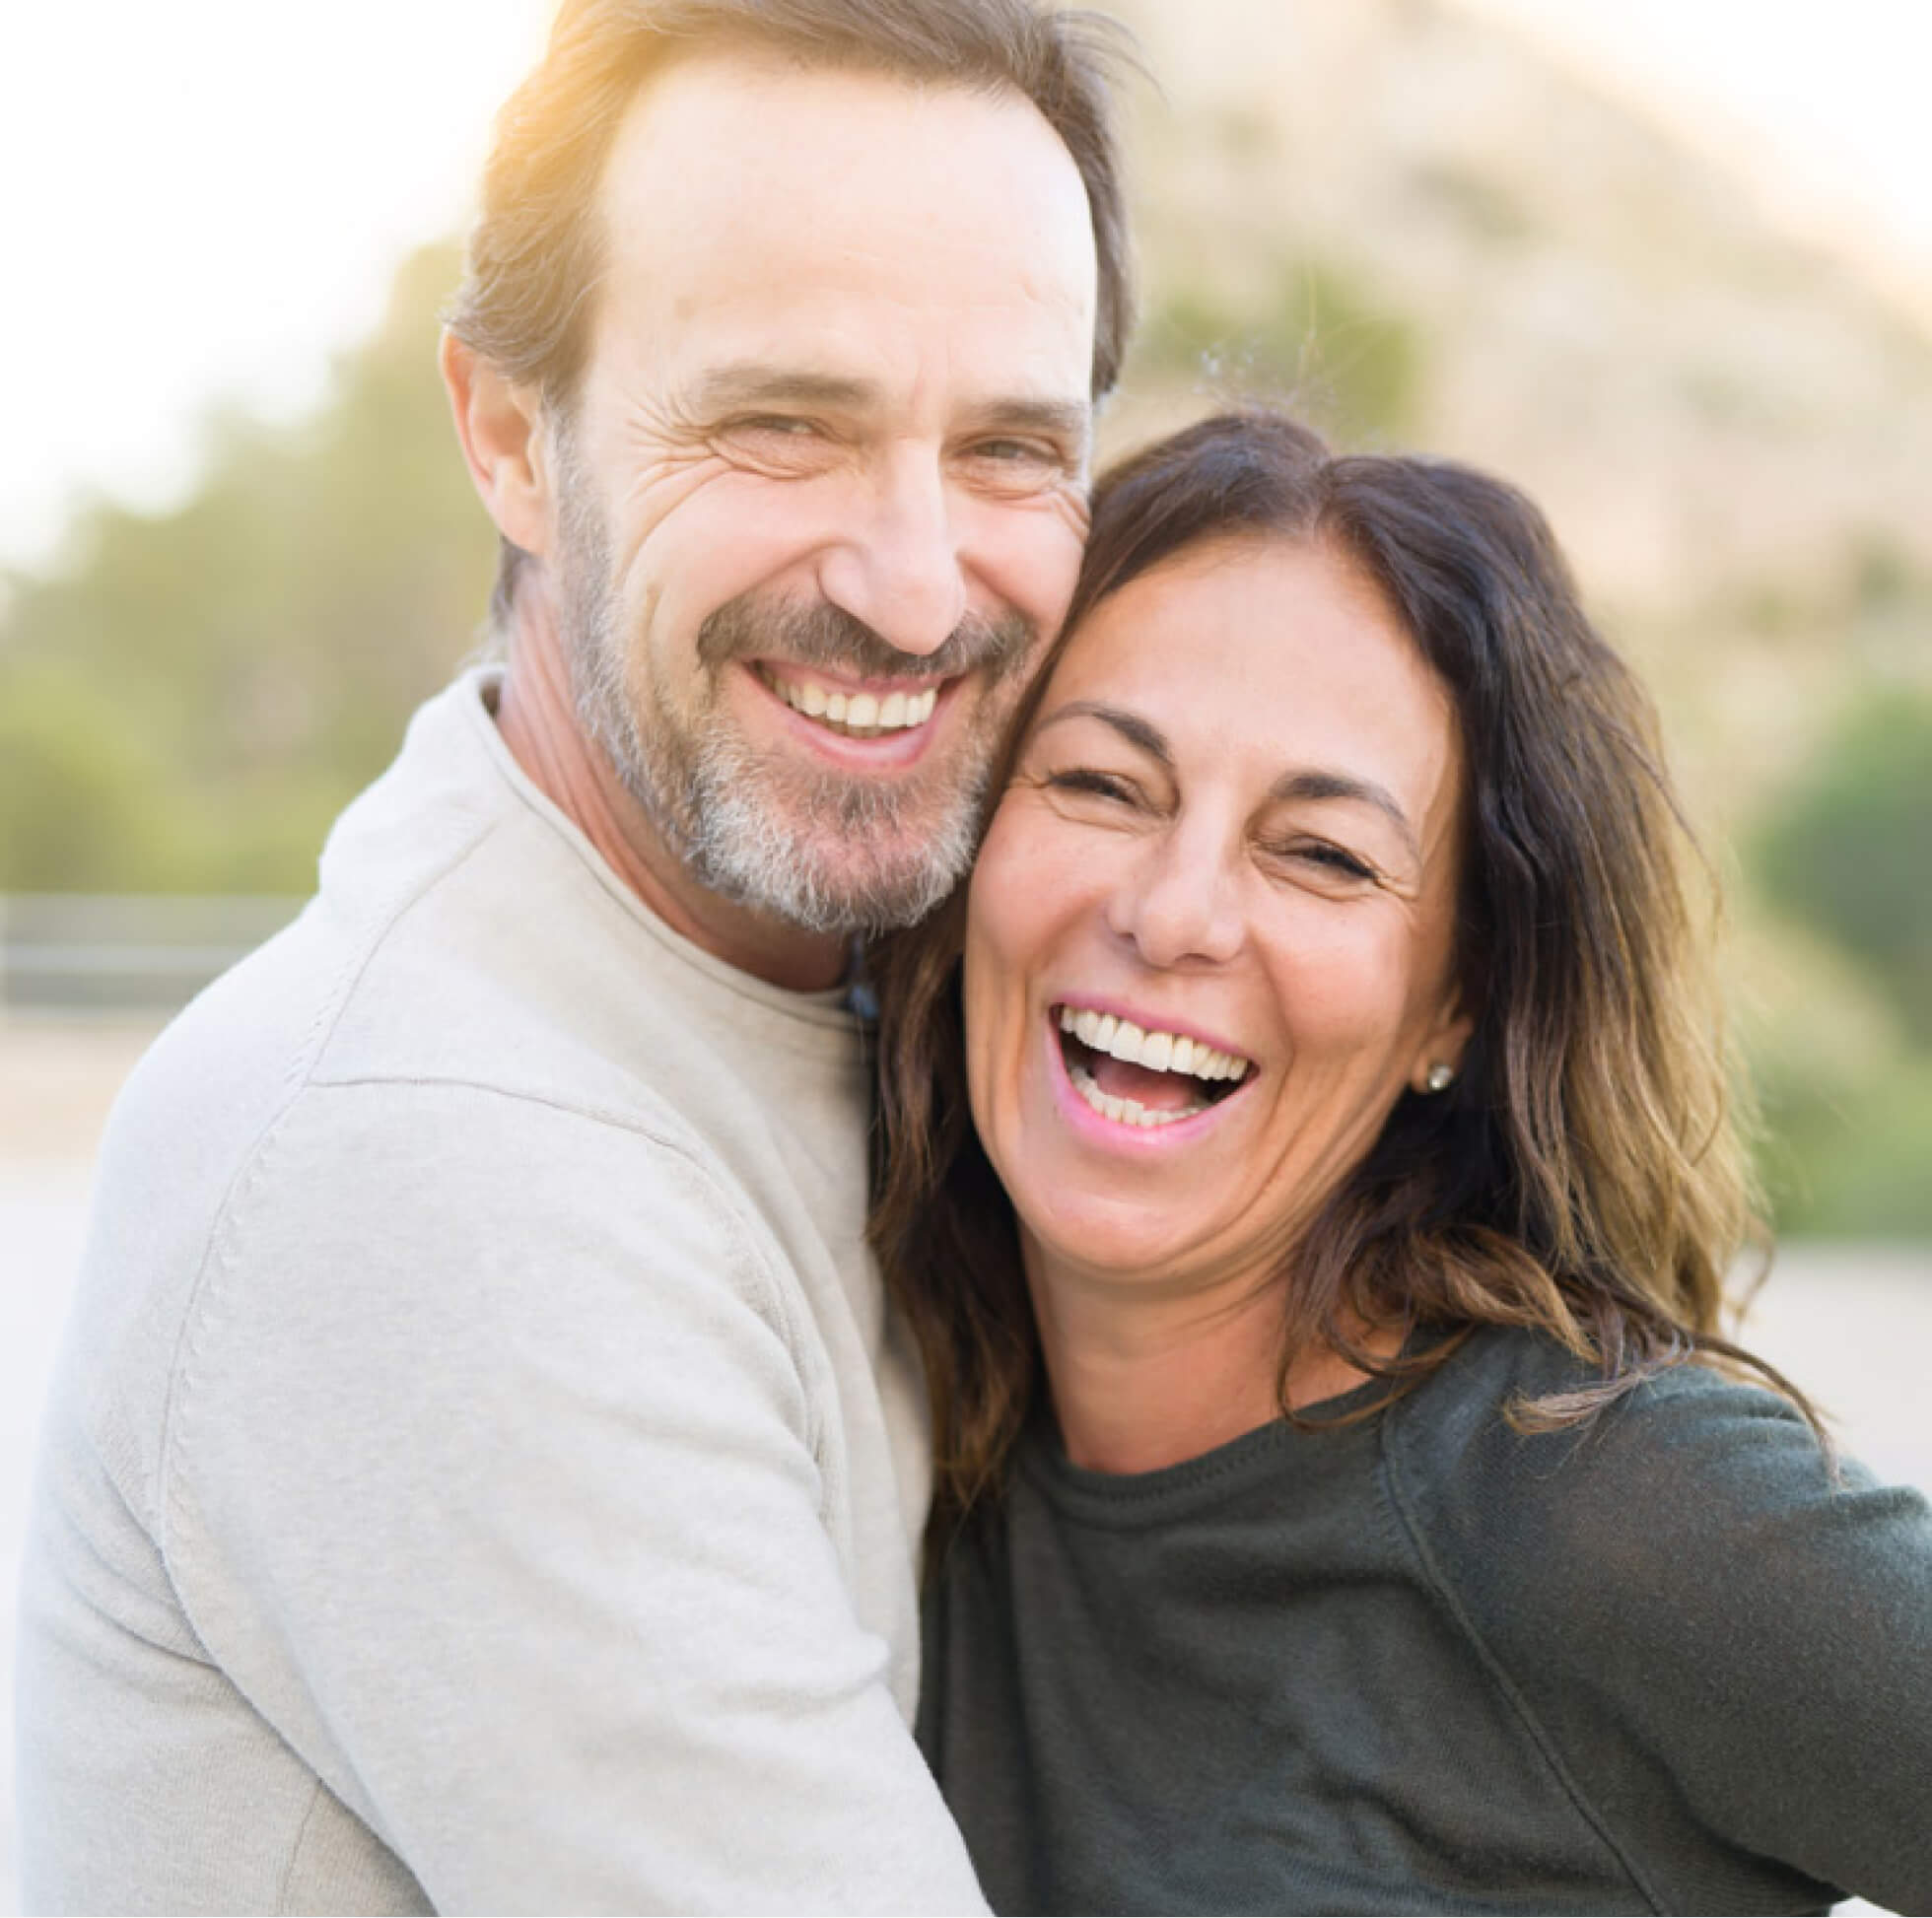 oral surgery center in palmdale - Client Image